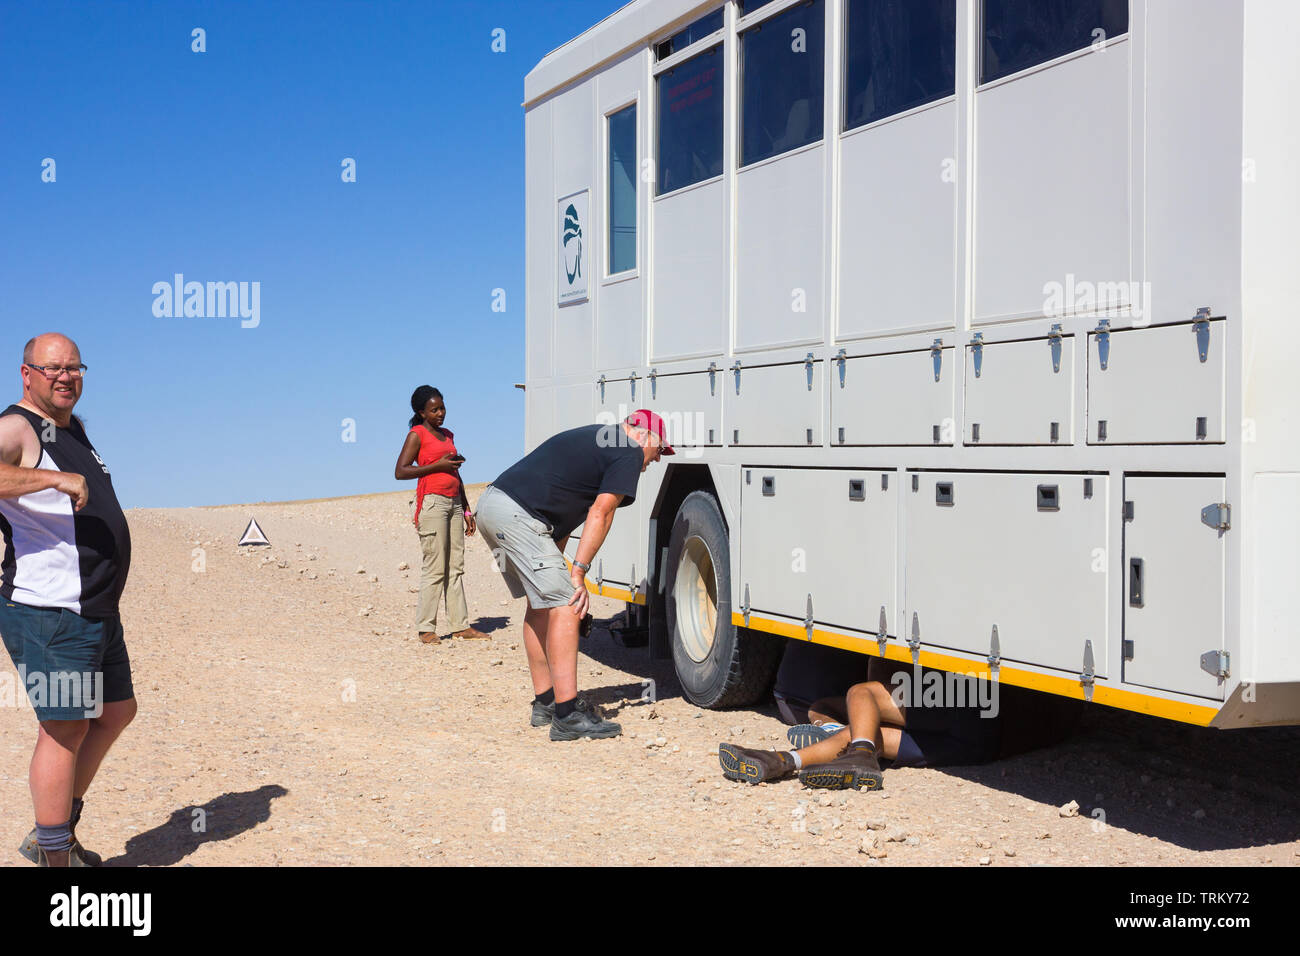 African overland tour truck or vehicle broken down and stuck on the side of a deserted desert dirt road in Namibia, Africa with people and tourists - Stock Image